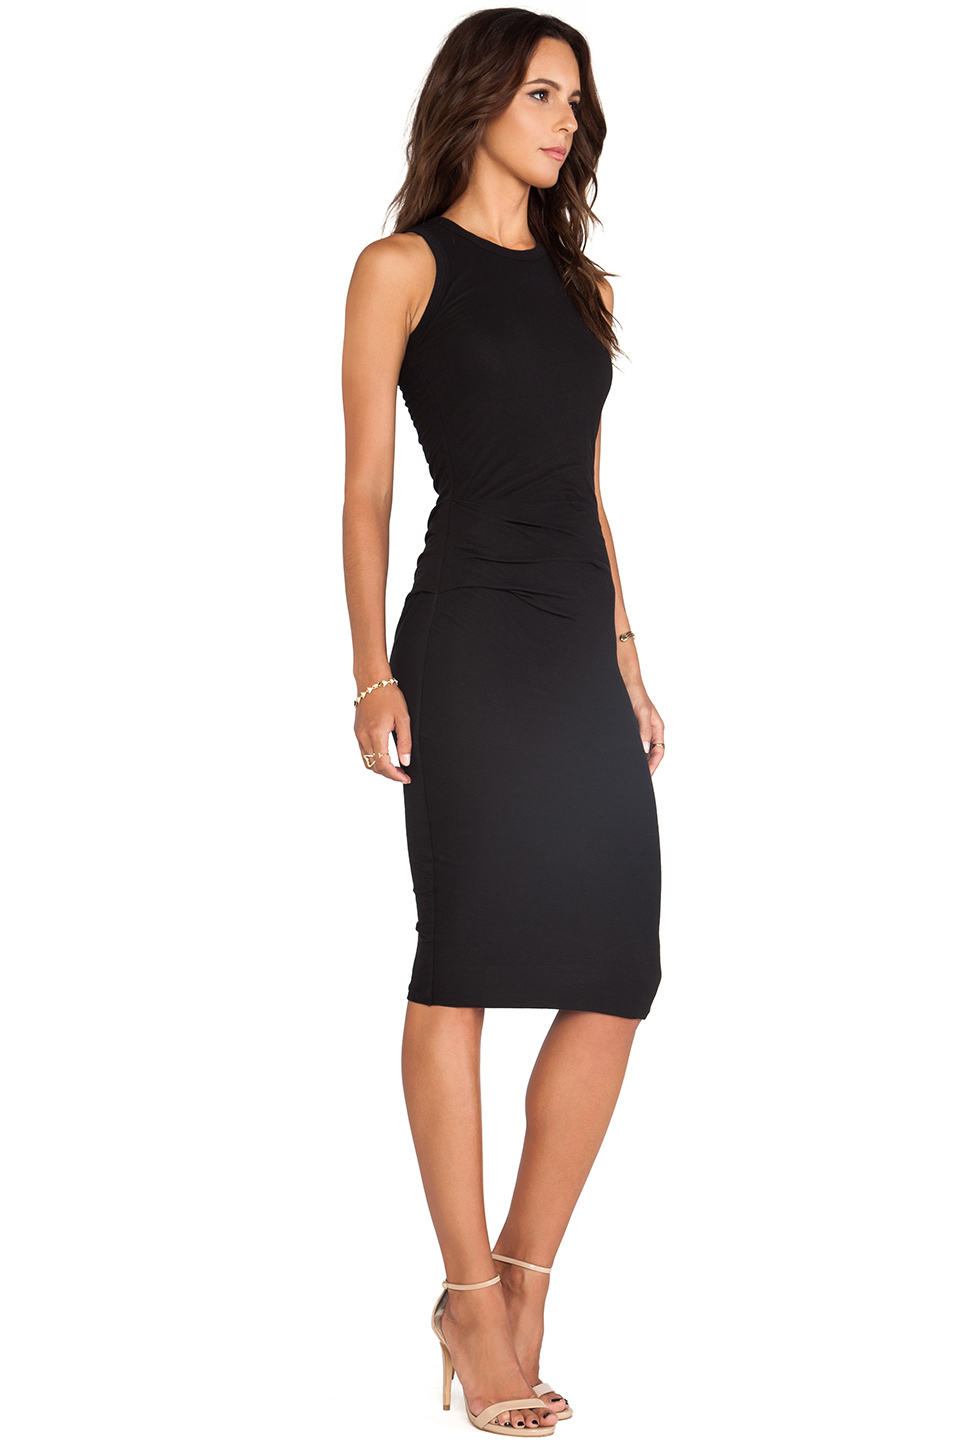 James Perse Skinny Tucked Tank Dress in Black | REVOLVE